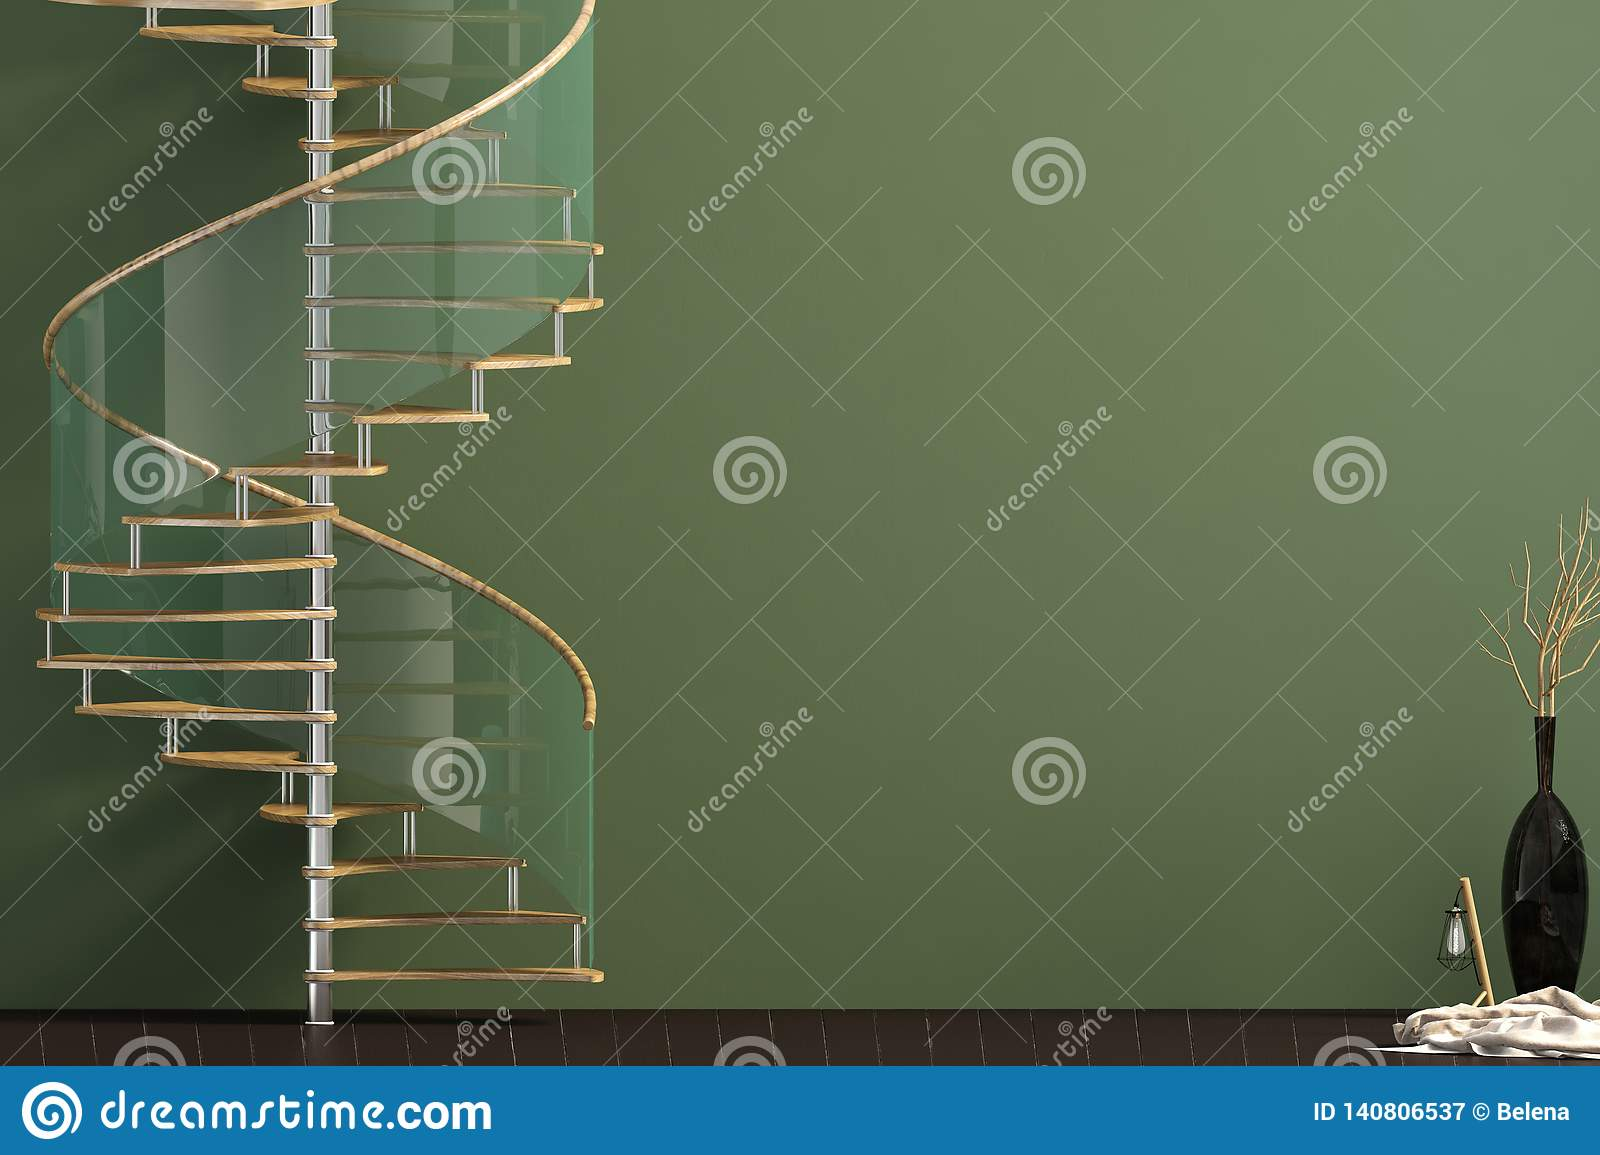 hight resolution of spiral staircase stock illustrations 1 510 spiral staircase stock illustrations vectors clipart dreamstime